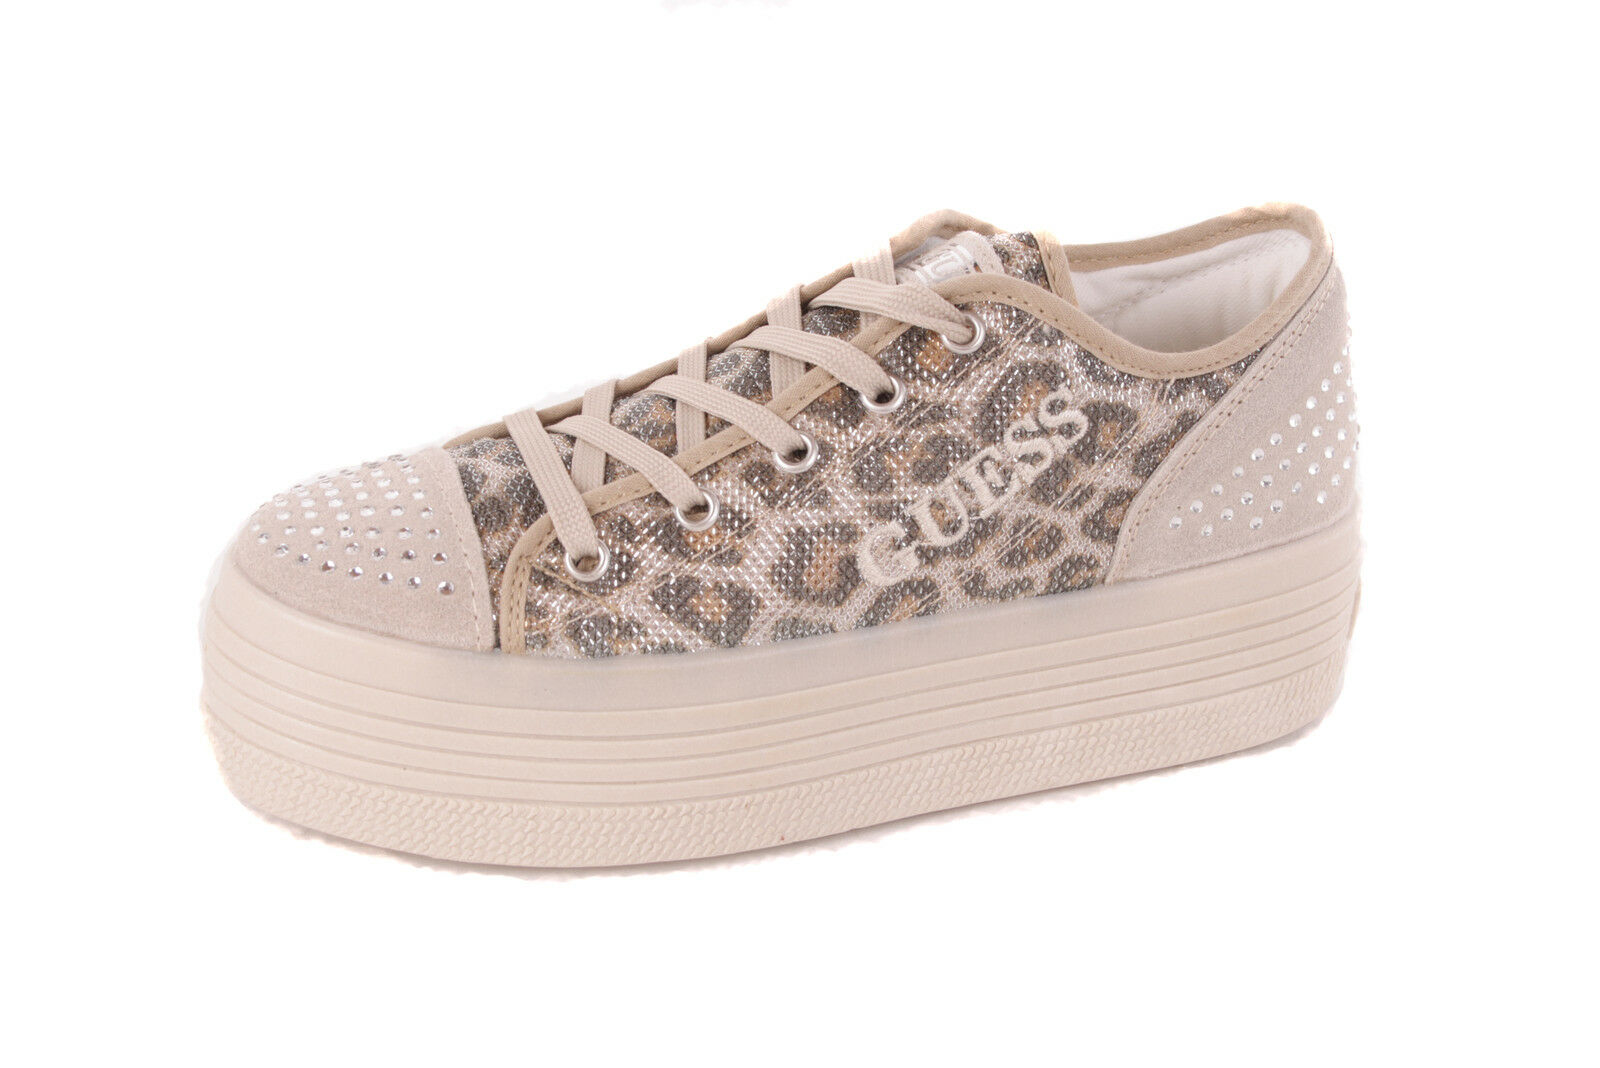 GUESS kvinnor skor Lace Up skor Beige Lepornt 35;505